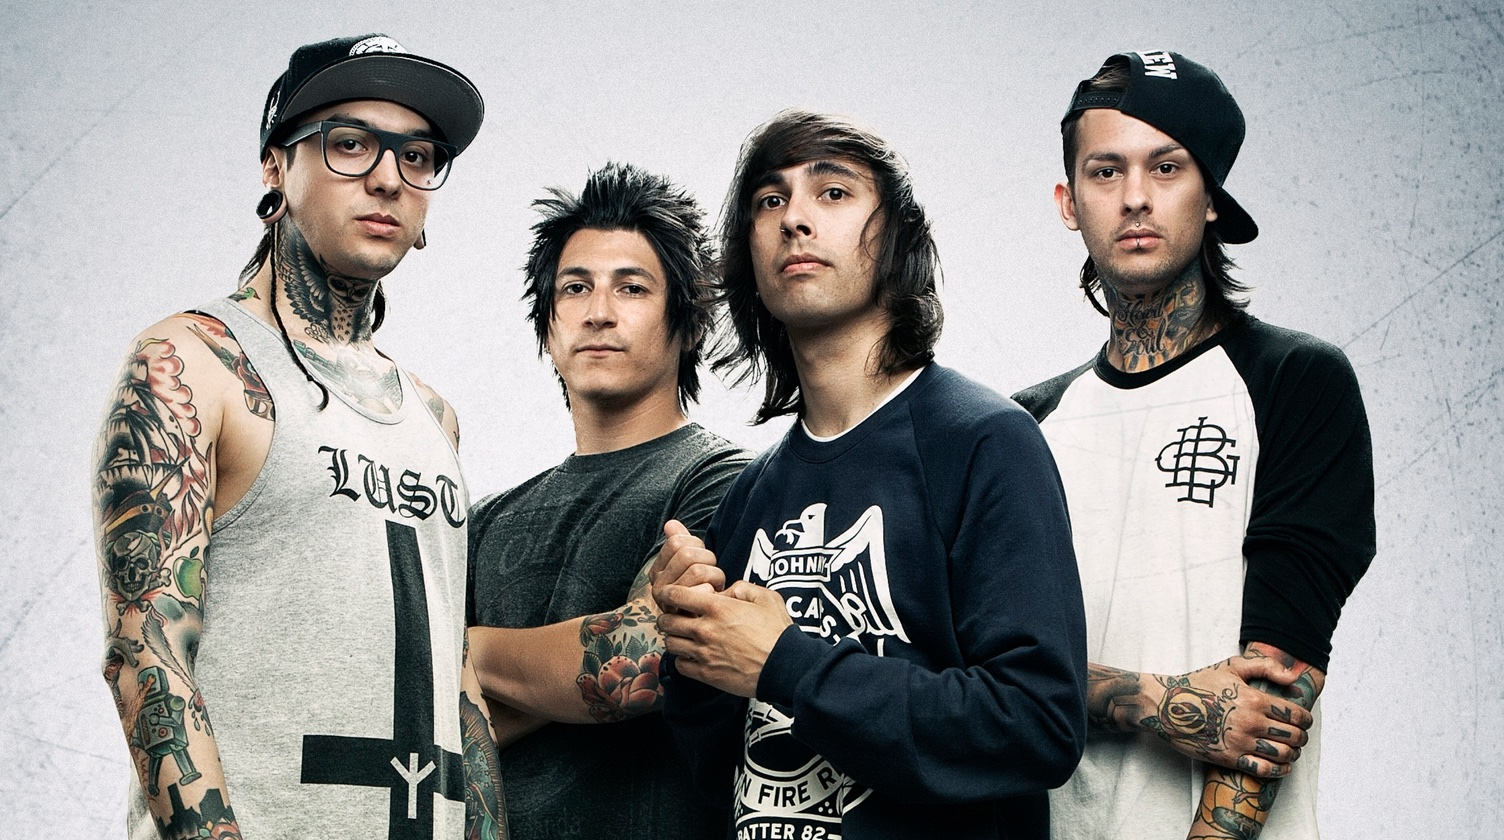 Pierce the veil announce the misadventures tour chorus pierce the veil m4hsunfo